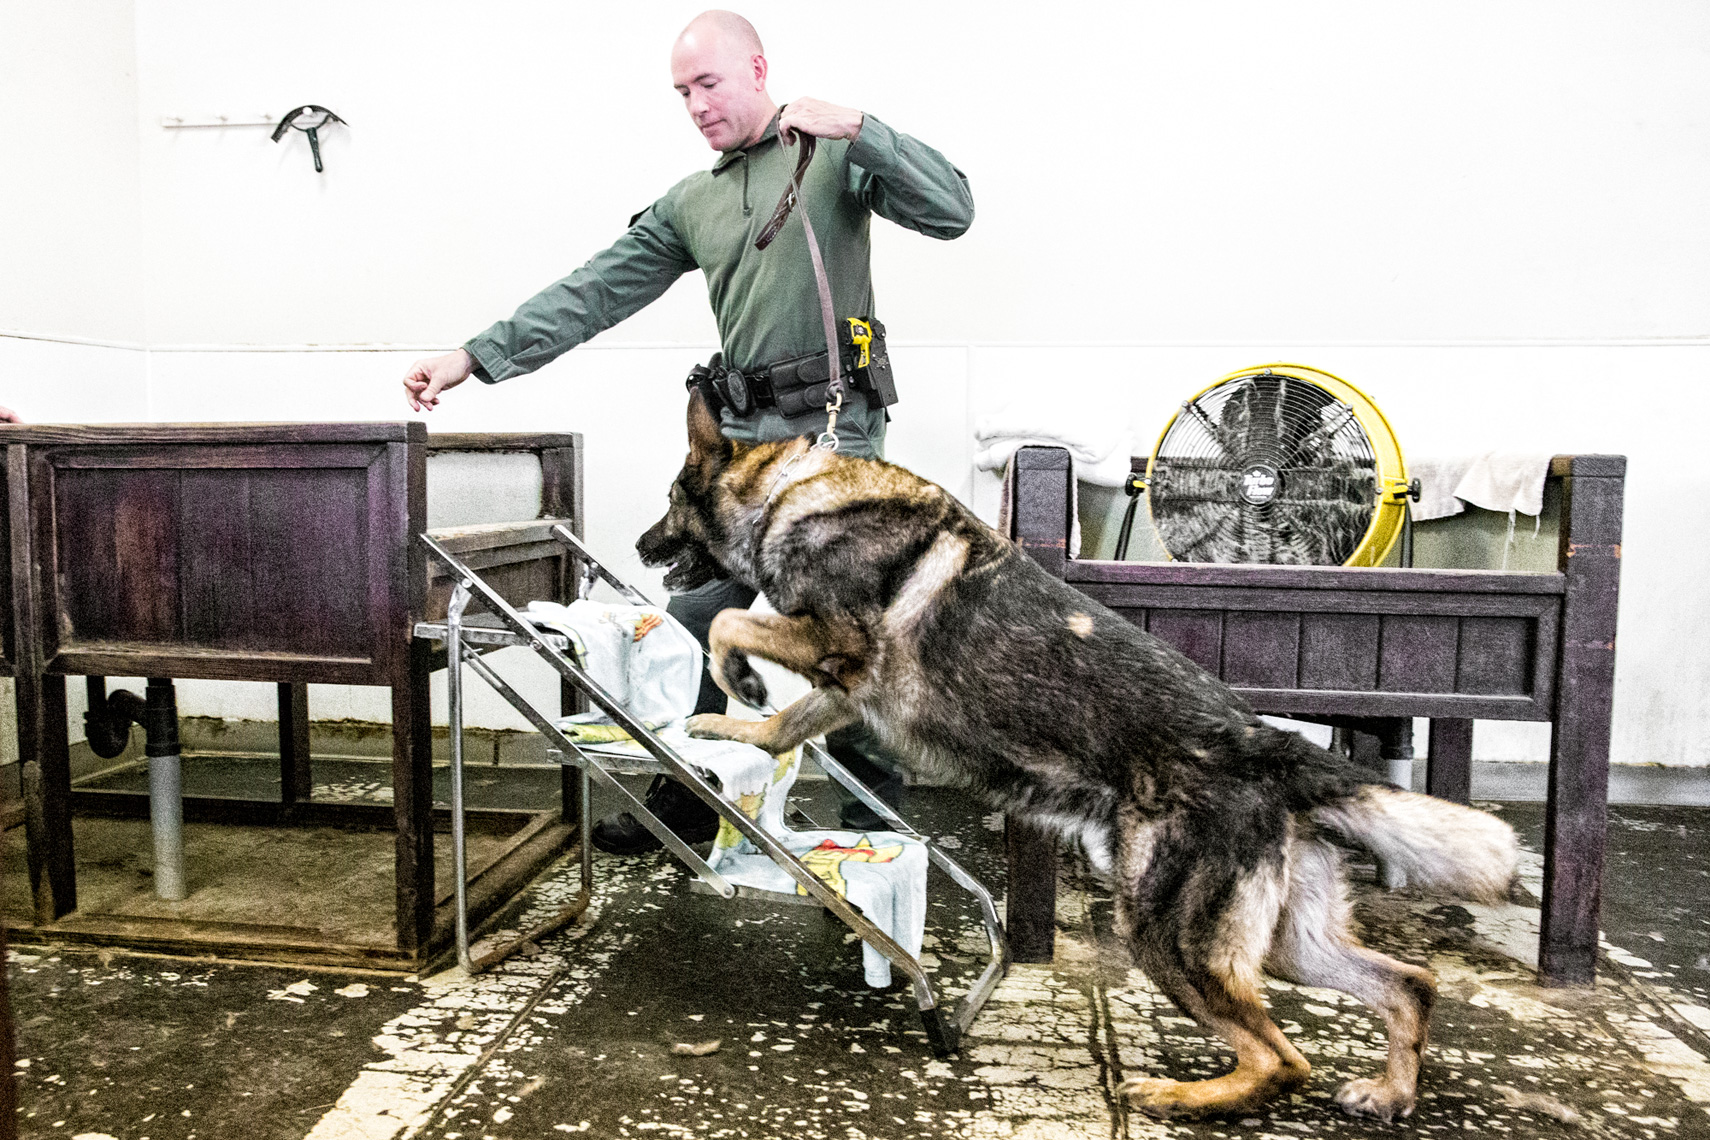 Los Angeles Dog Photography, Michael Brian, Santa Barbara Police officer with K-9 Brag for dog bath